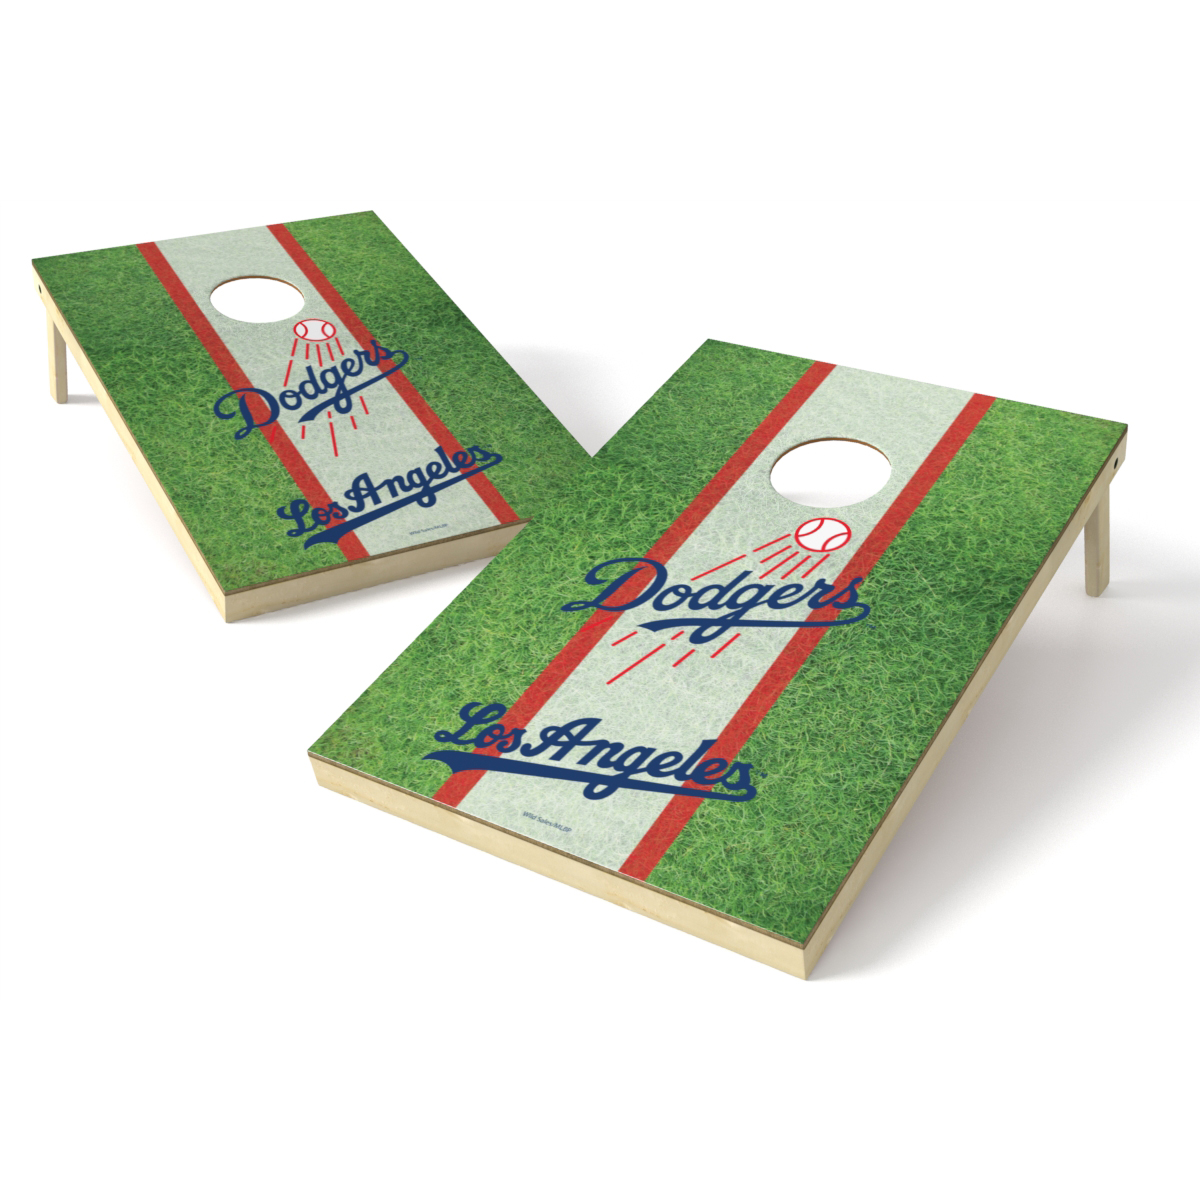 Los Angeles Dodgers 2' x 3' Field Shield Tailgate Toss Game - No Size